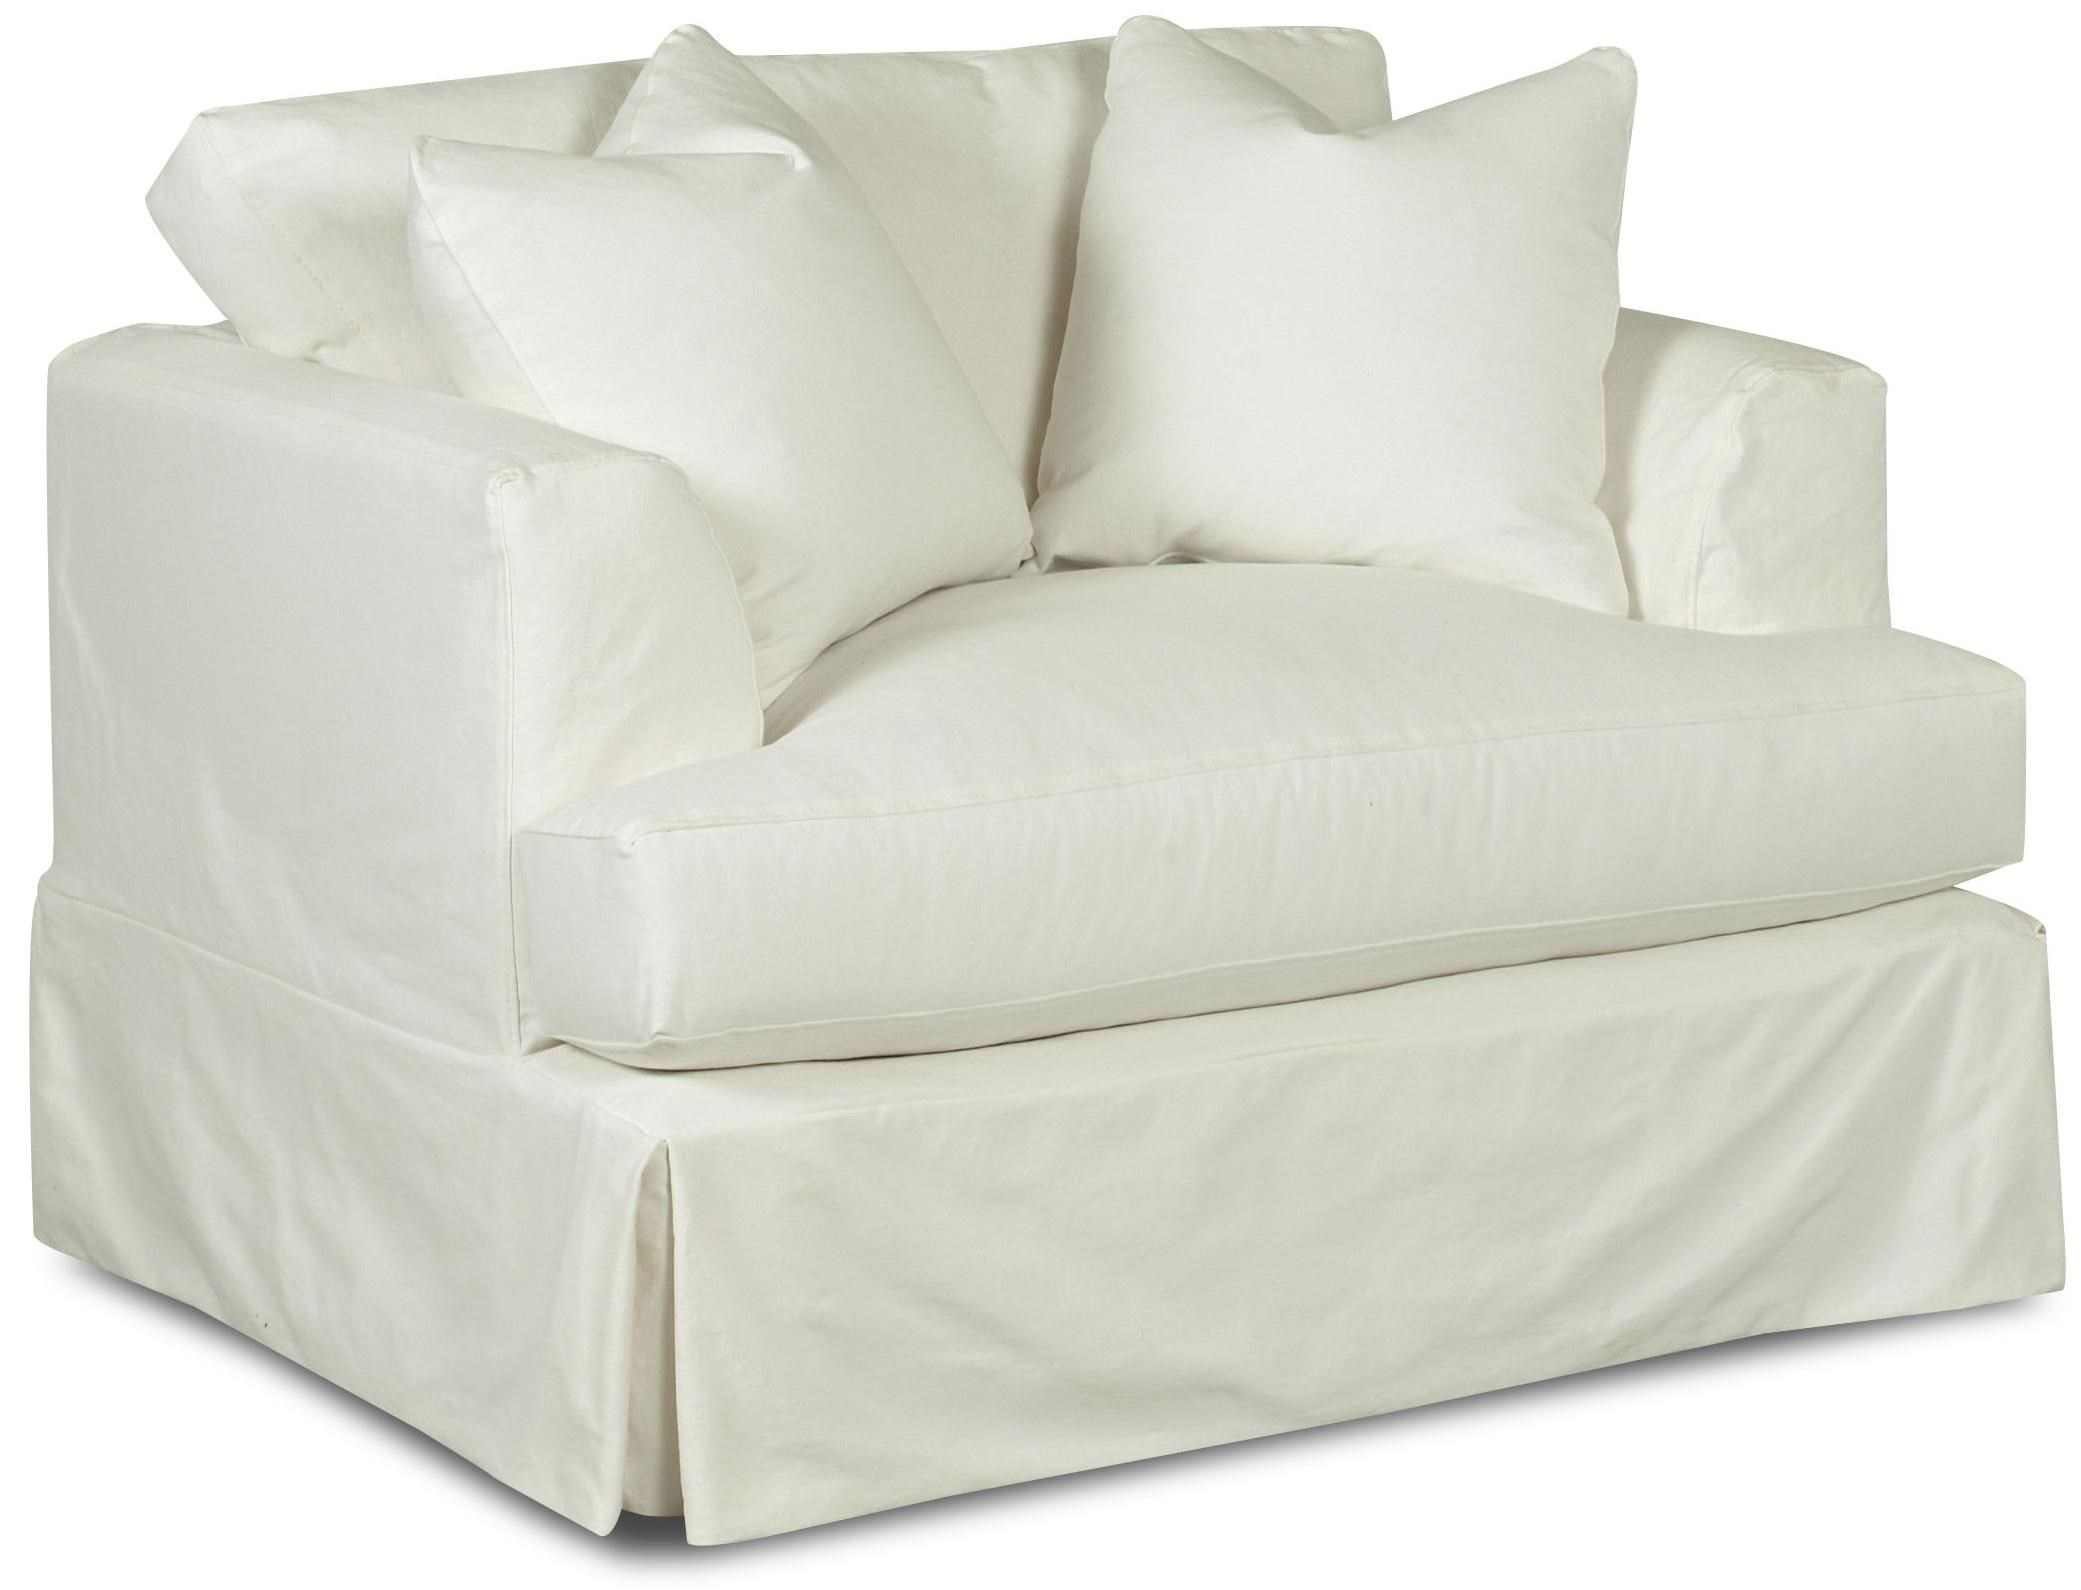 bentley casual sectional sofa with slipcover by klaussner corner bed dfs the honoroak